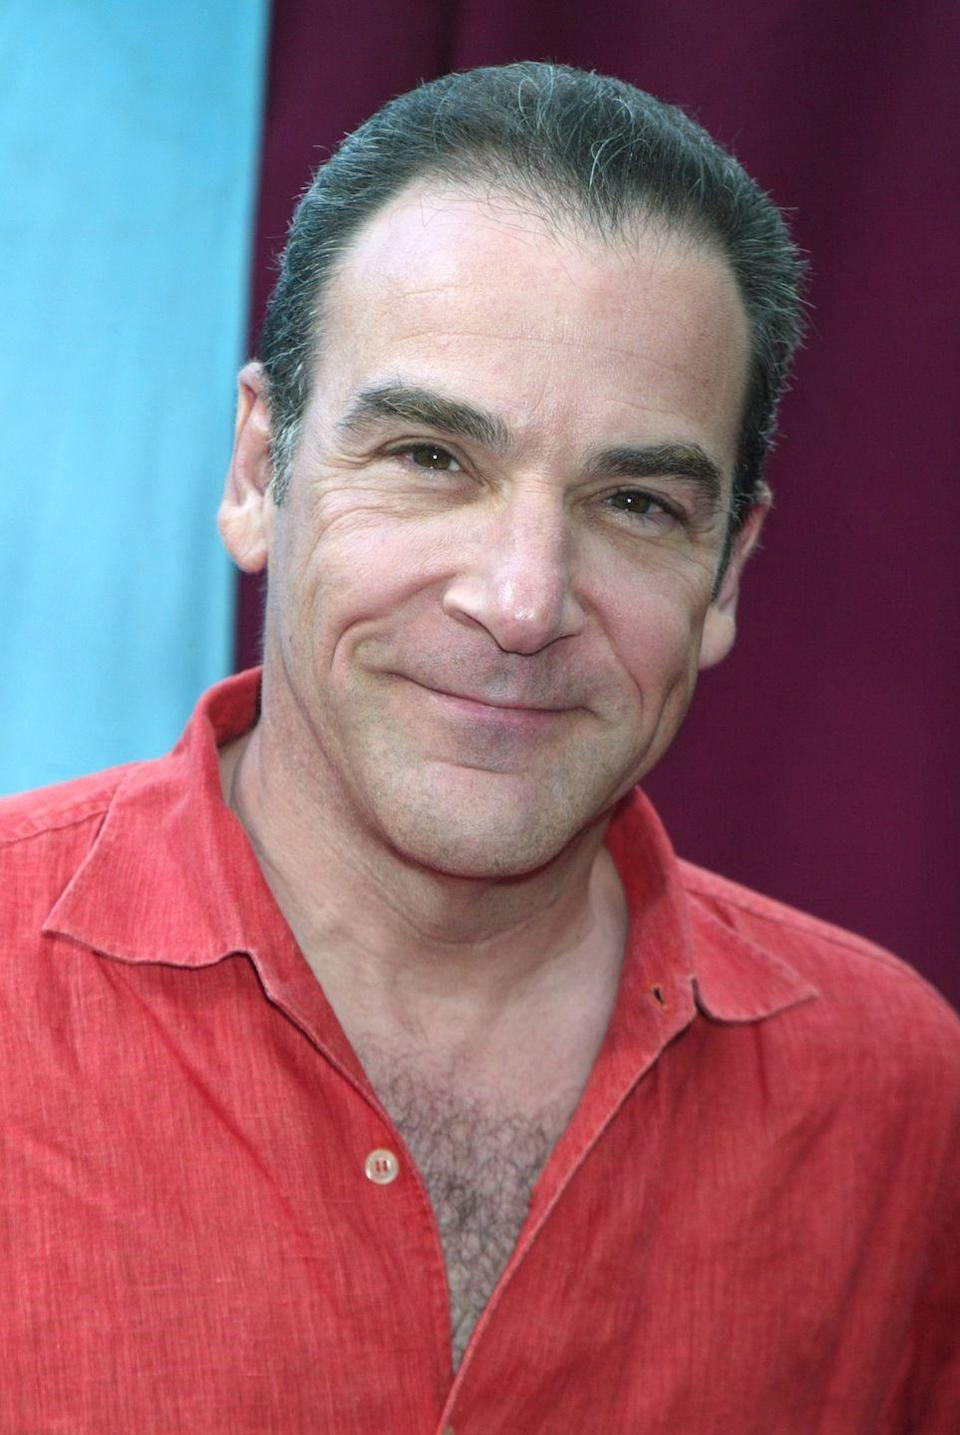 "<p>When Mandy Patinkin became unhappy with his character, Jason Gideon, he <a href=""https://ew.com/article/2007/07/20/mandy-patinkin-leaves-criminal-minds/"" rel=""nofollow noopener"" target=""_blank"" data-ylk=""slk:reportedly stopped showing up"" class=""link rapid-noclick-resp"">reportedly stopped showing up</a>. The writers decided to kill off his character with him getting shot off-camera. That's one way to get written off of a show.</p>"